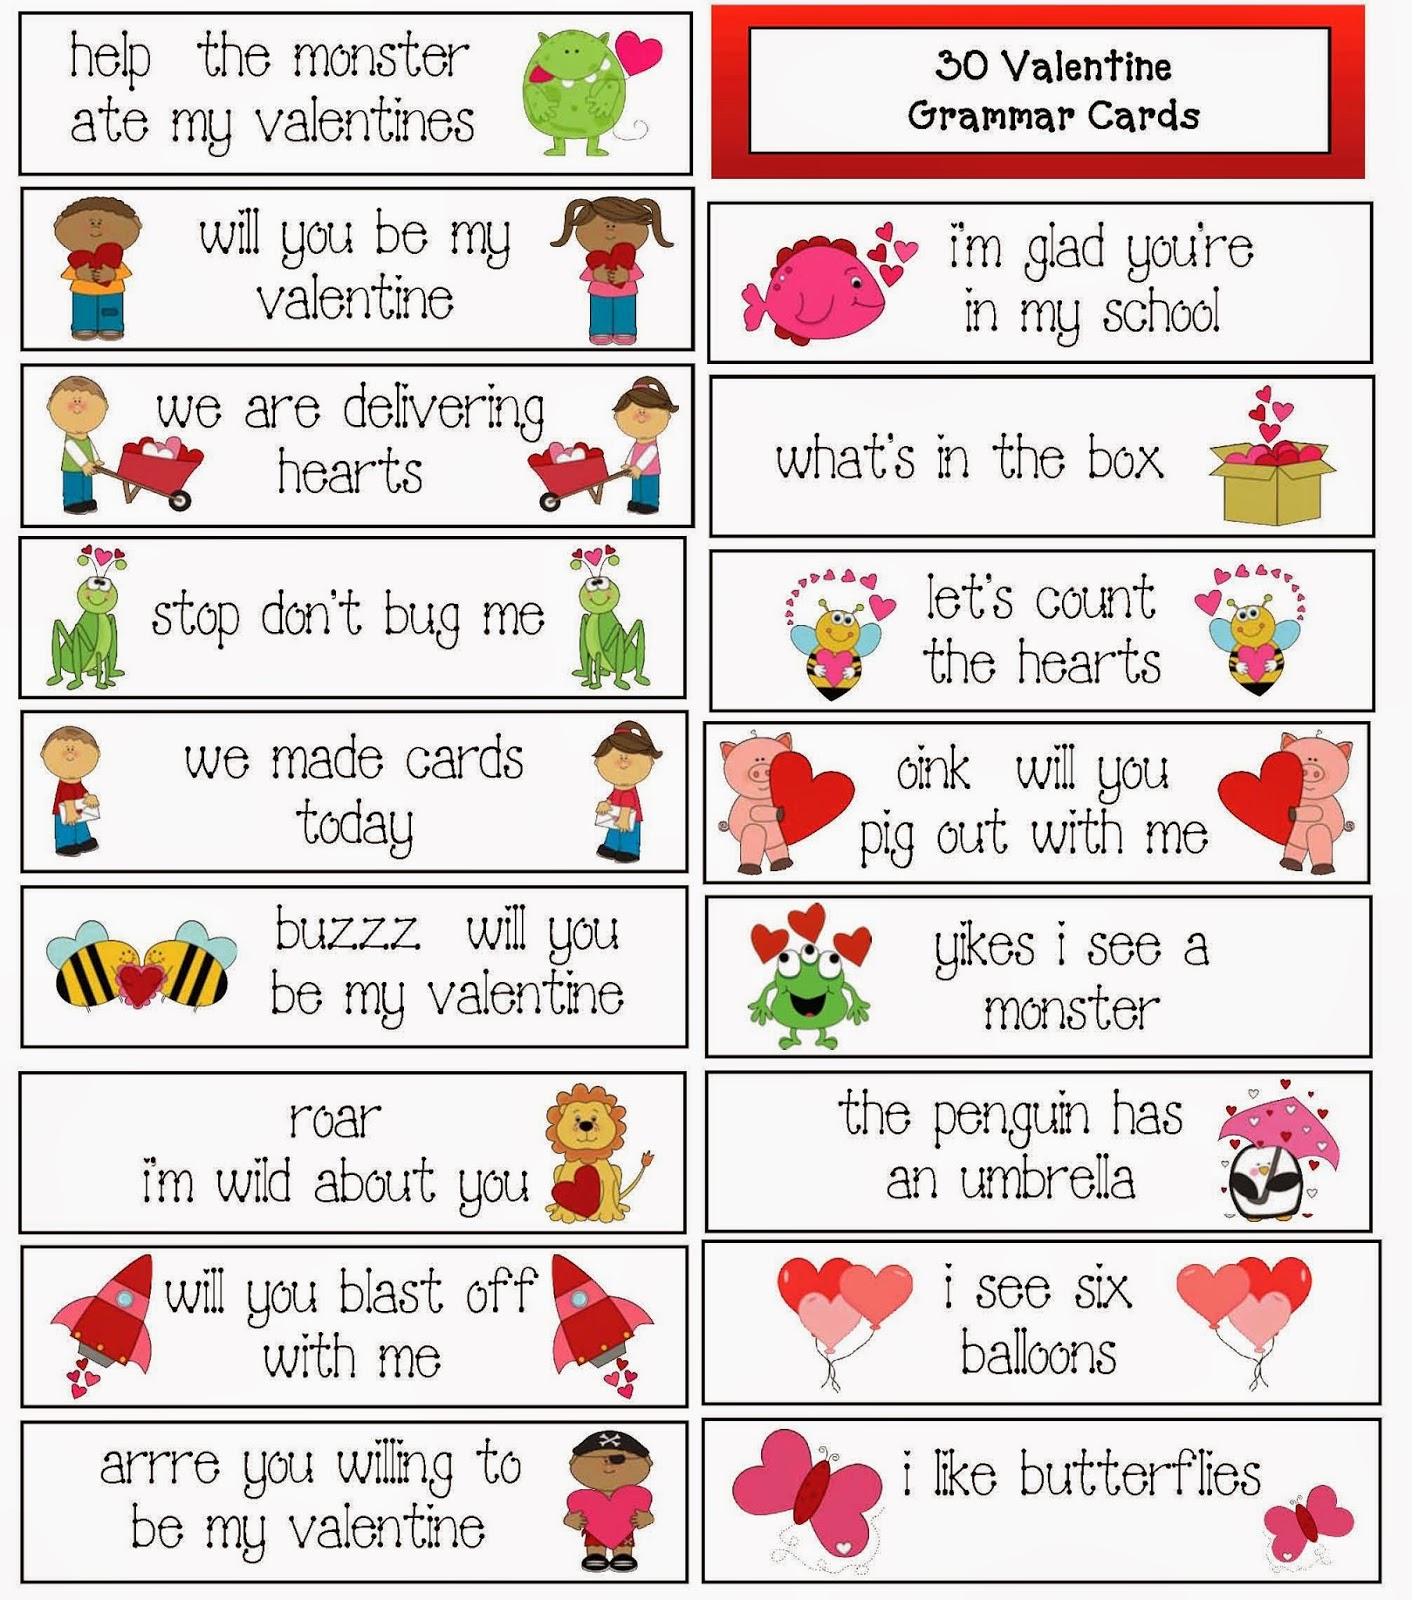 Classroom Freebies 30 ValentineThemed Grammar Cards – Valentine Cards for Students